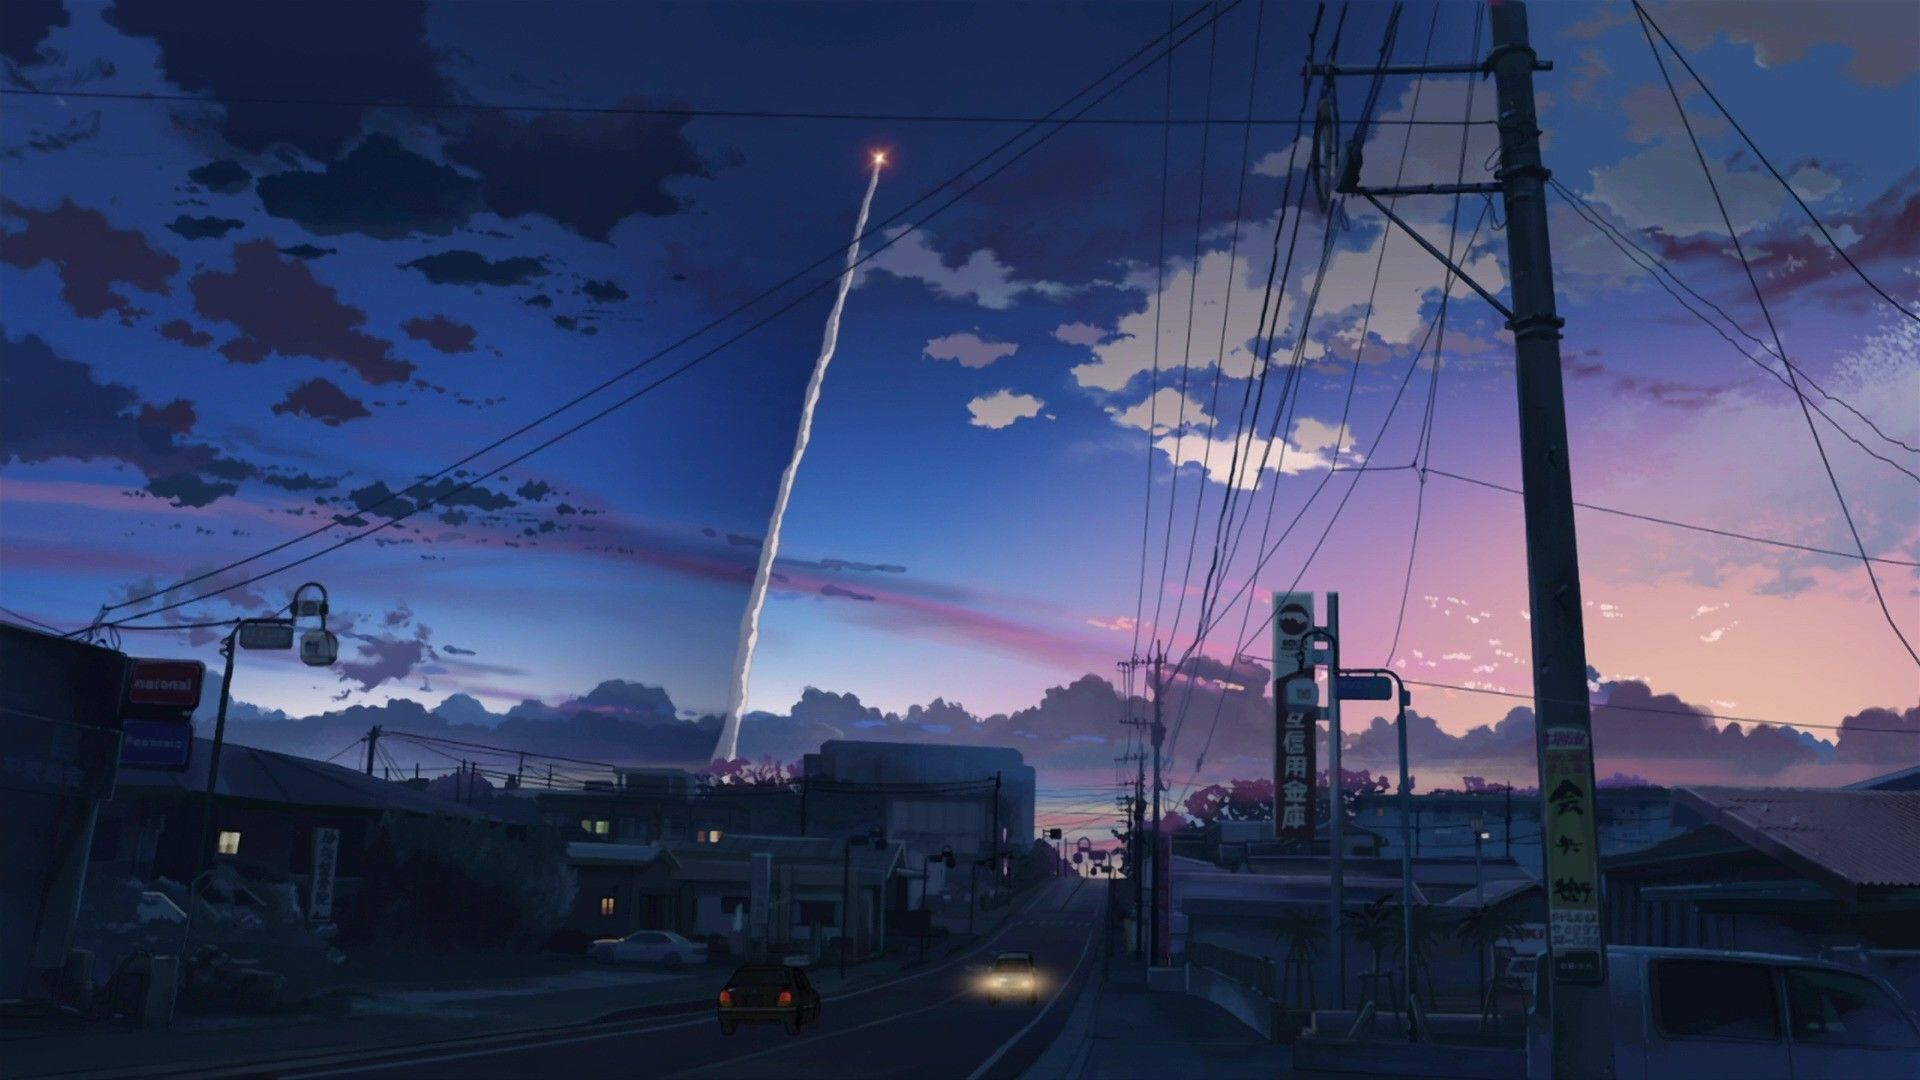 Windows 10 Wallpaper Anime Mywallpapers Site In 2020 Anime Scenery Anime Background Sky Anime